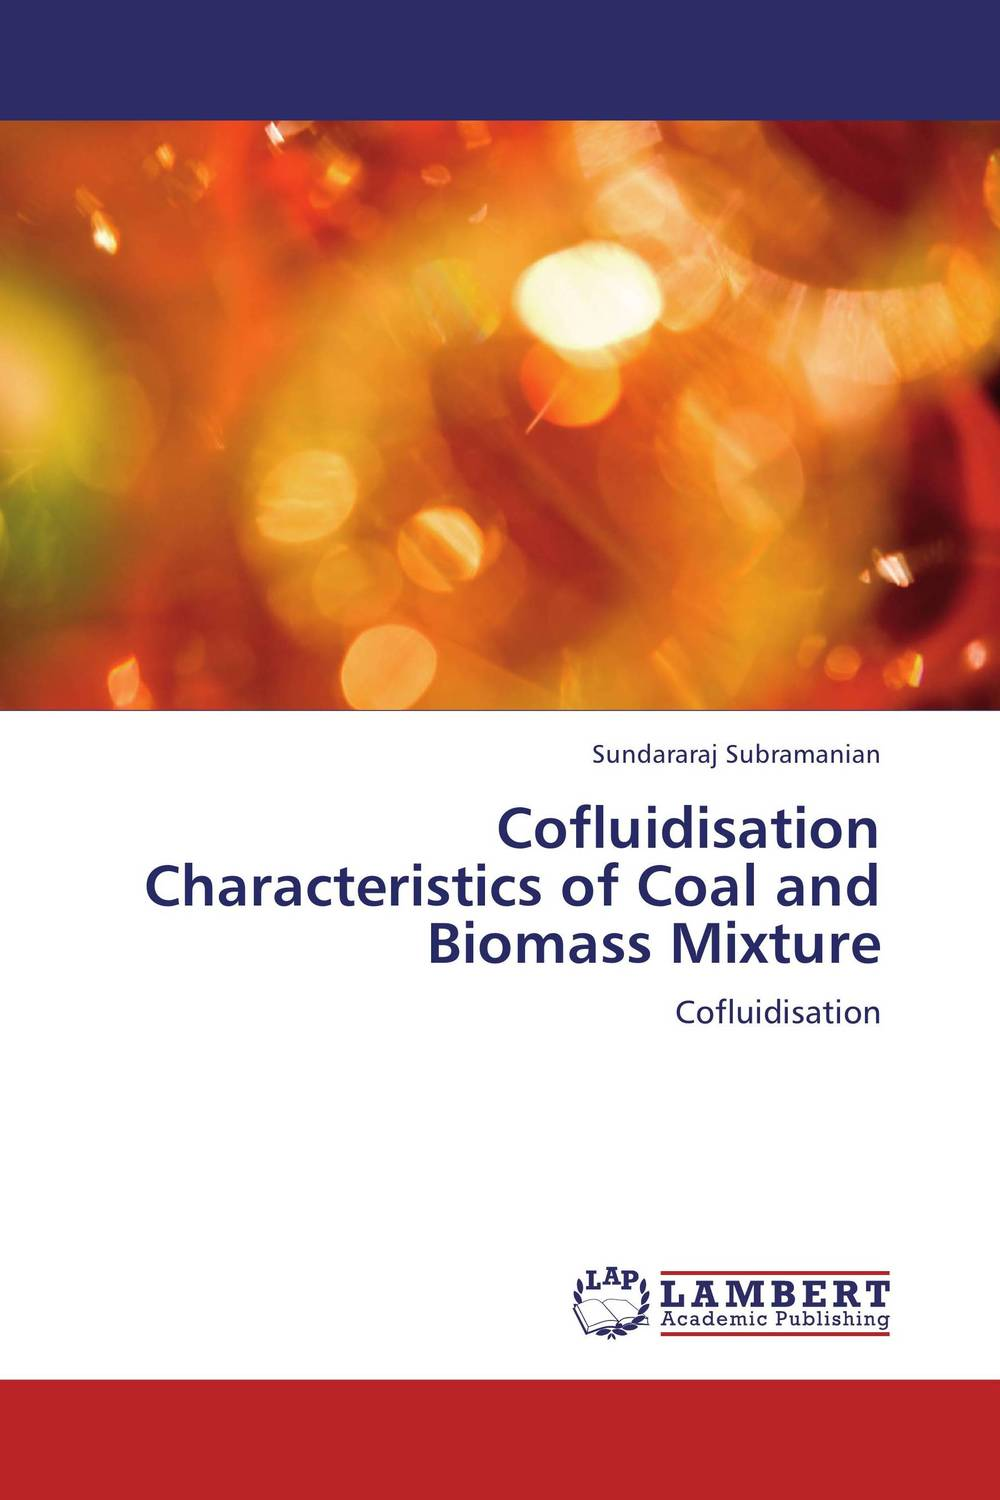 Cofluidisation Characteristics of Coal and Biomass Mixture rakesh kumar tiwari and rajendra prasad ojha conformation and stability of mixed dna triplex